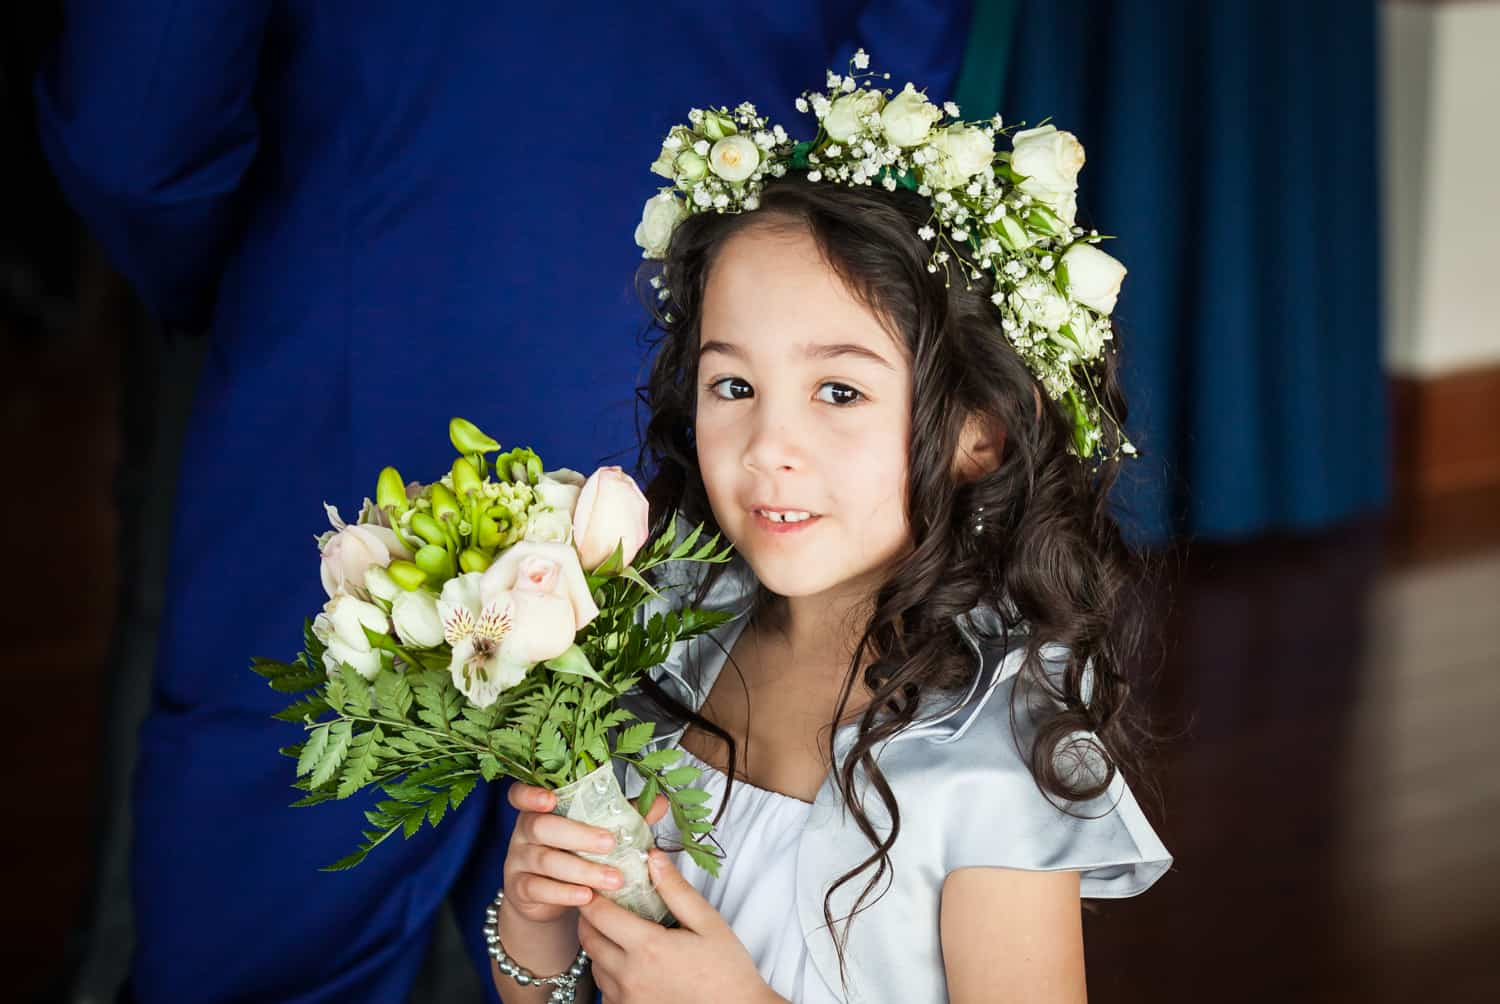 Little flower girl holding bouquet and wearing flower crown